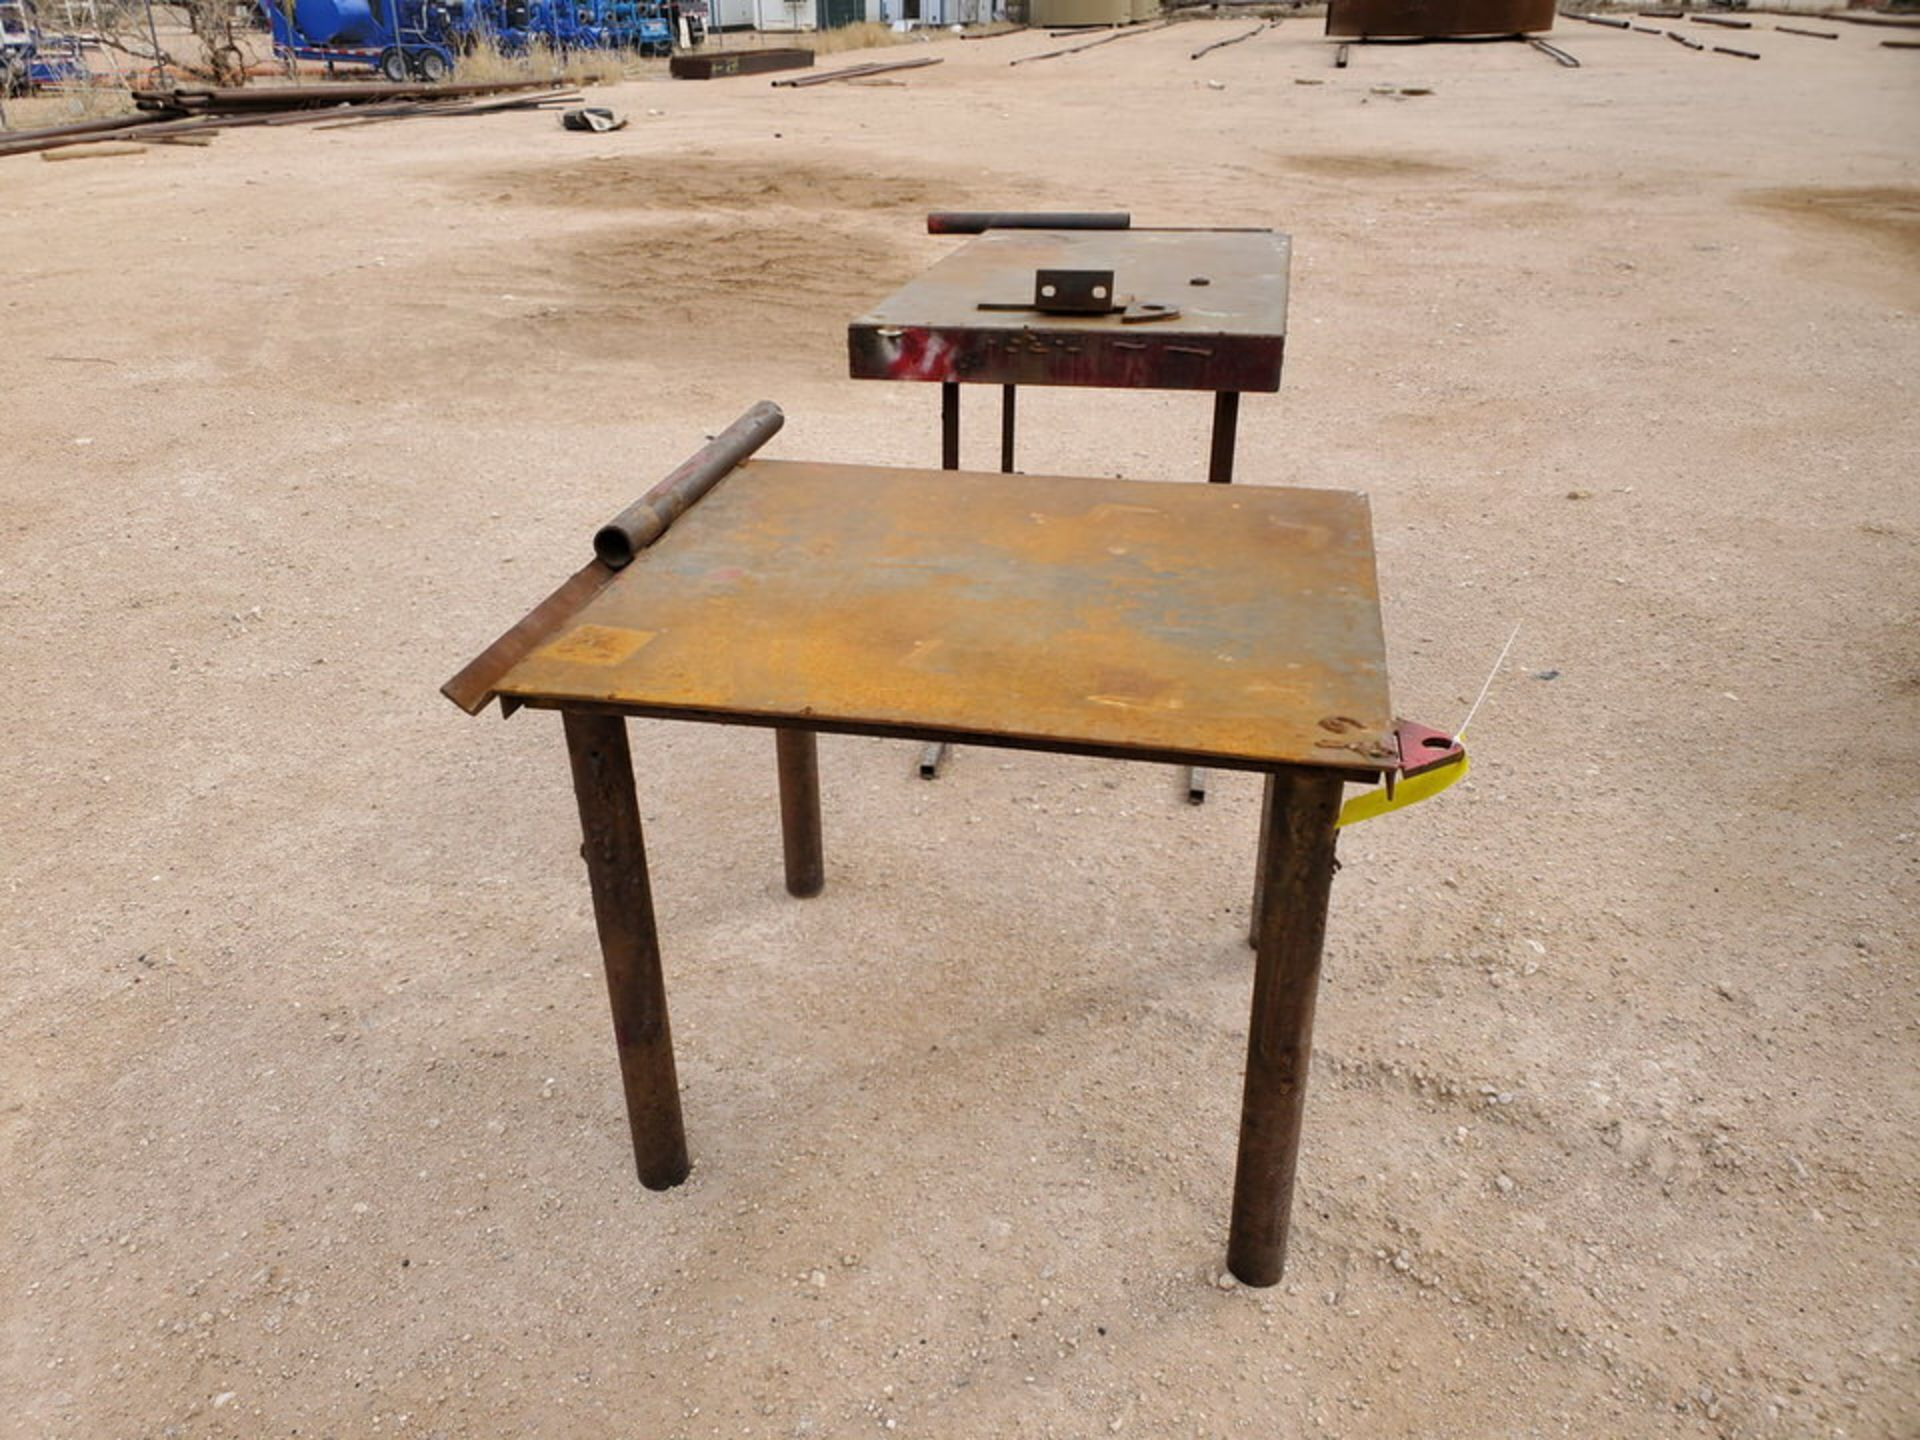 """(2) Stl Welding Tables (1) 36"""" x 43"""" x 30"""", (1) 60"""" x 29"""" 36"""" - Image 2 of 6"""